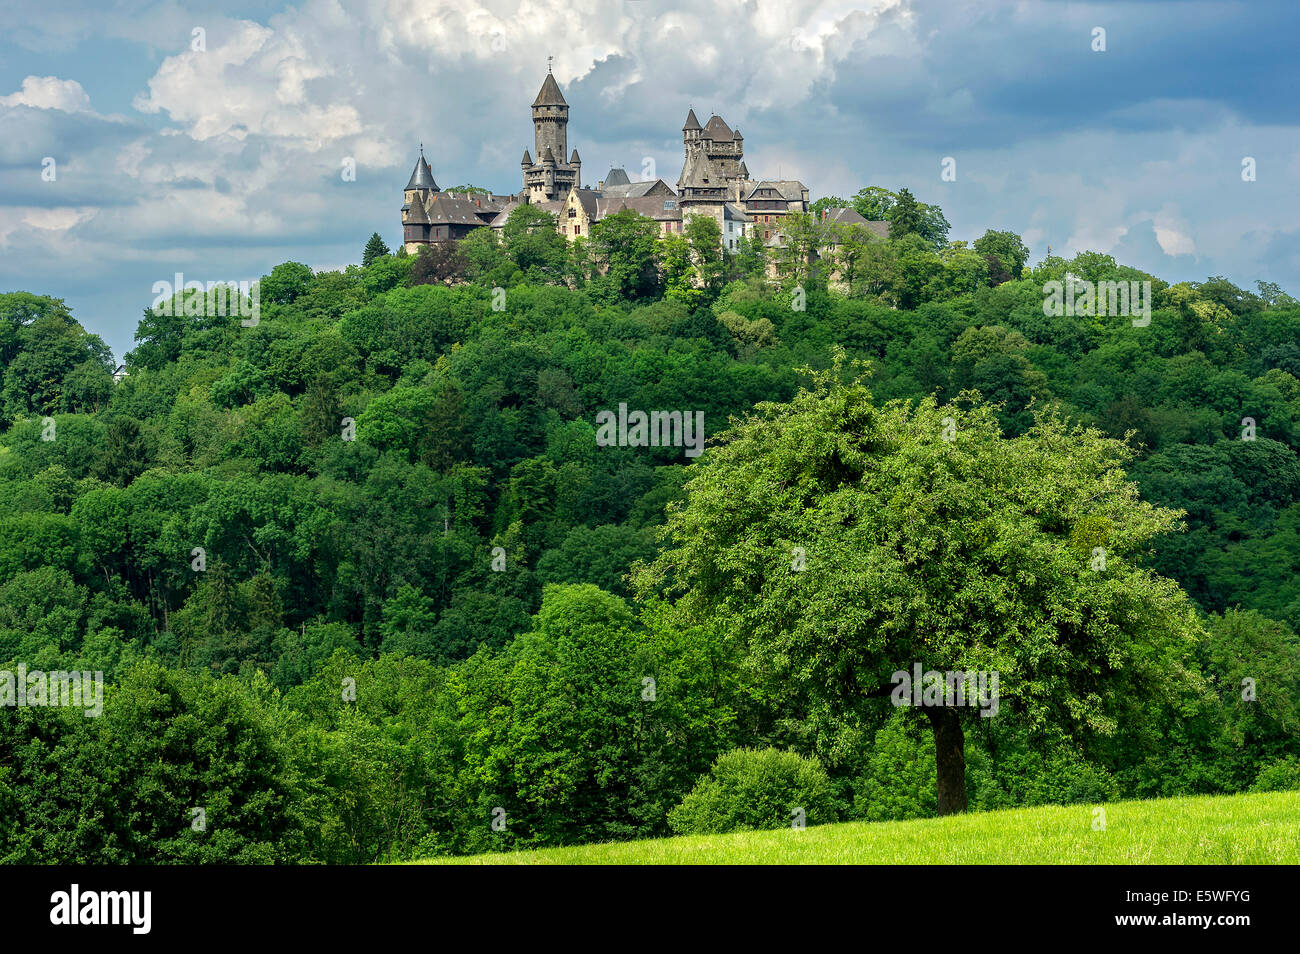 Castle towers, Hubertus Tower, New Castle Keep, Georg Tower and Alter Stock tower, in the overall view of Castle - Stock Image